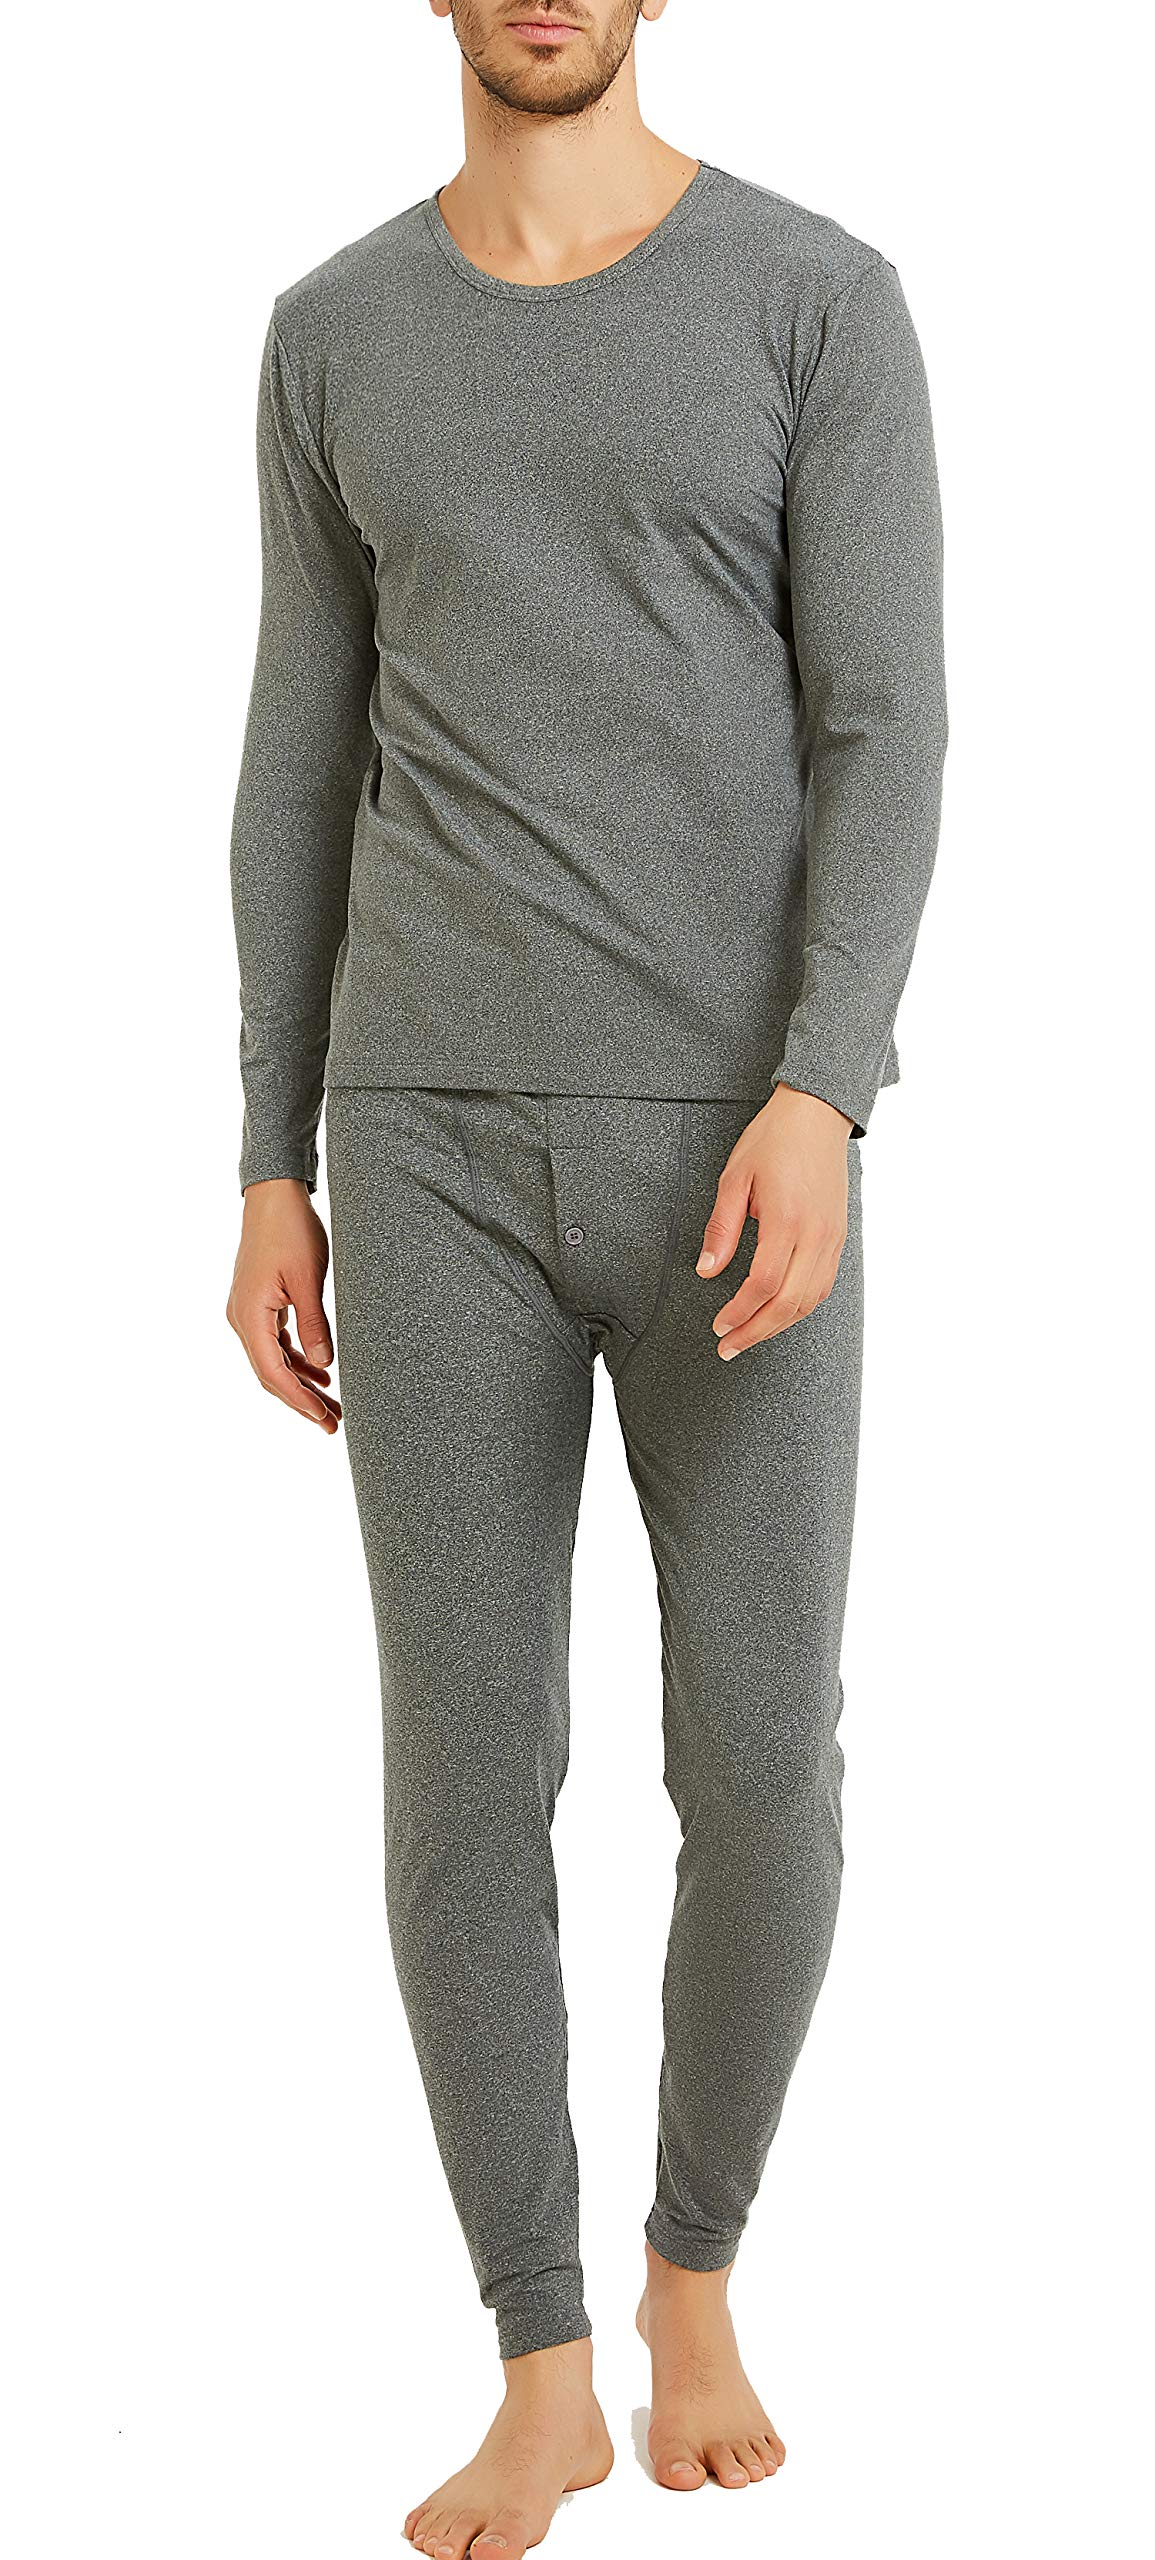 Byruze Thermal Underwear for Men Cationic Self-Heating Long Johns Men's Ultra Soft Warm Base Layer Long Sleeve Top & Bottom Winter Set Grey by Byruze